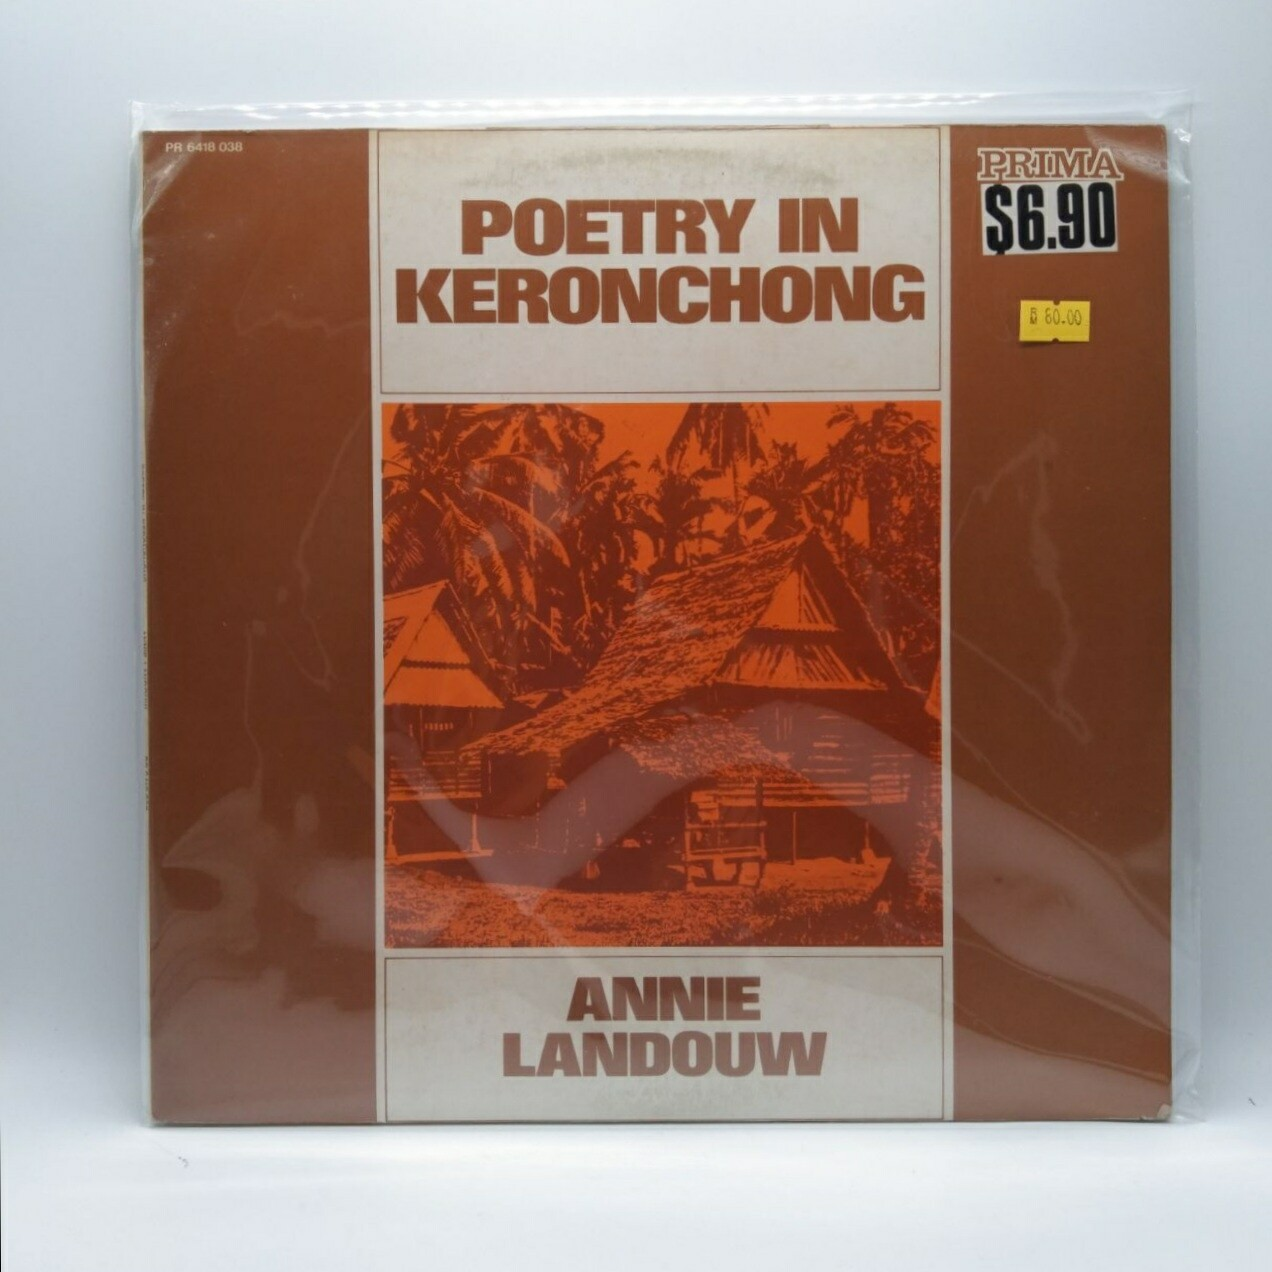 [USED] ANNIE LANDOUW -POETRY IN KERONCHONG- LP